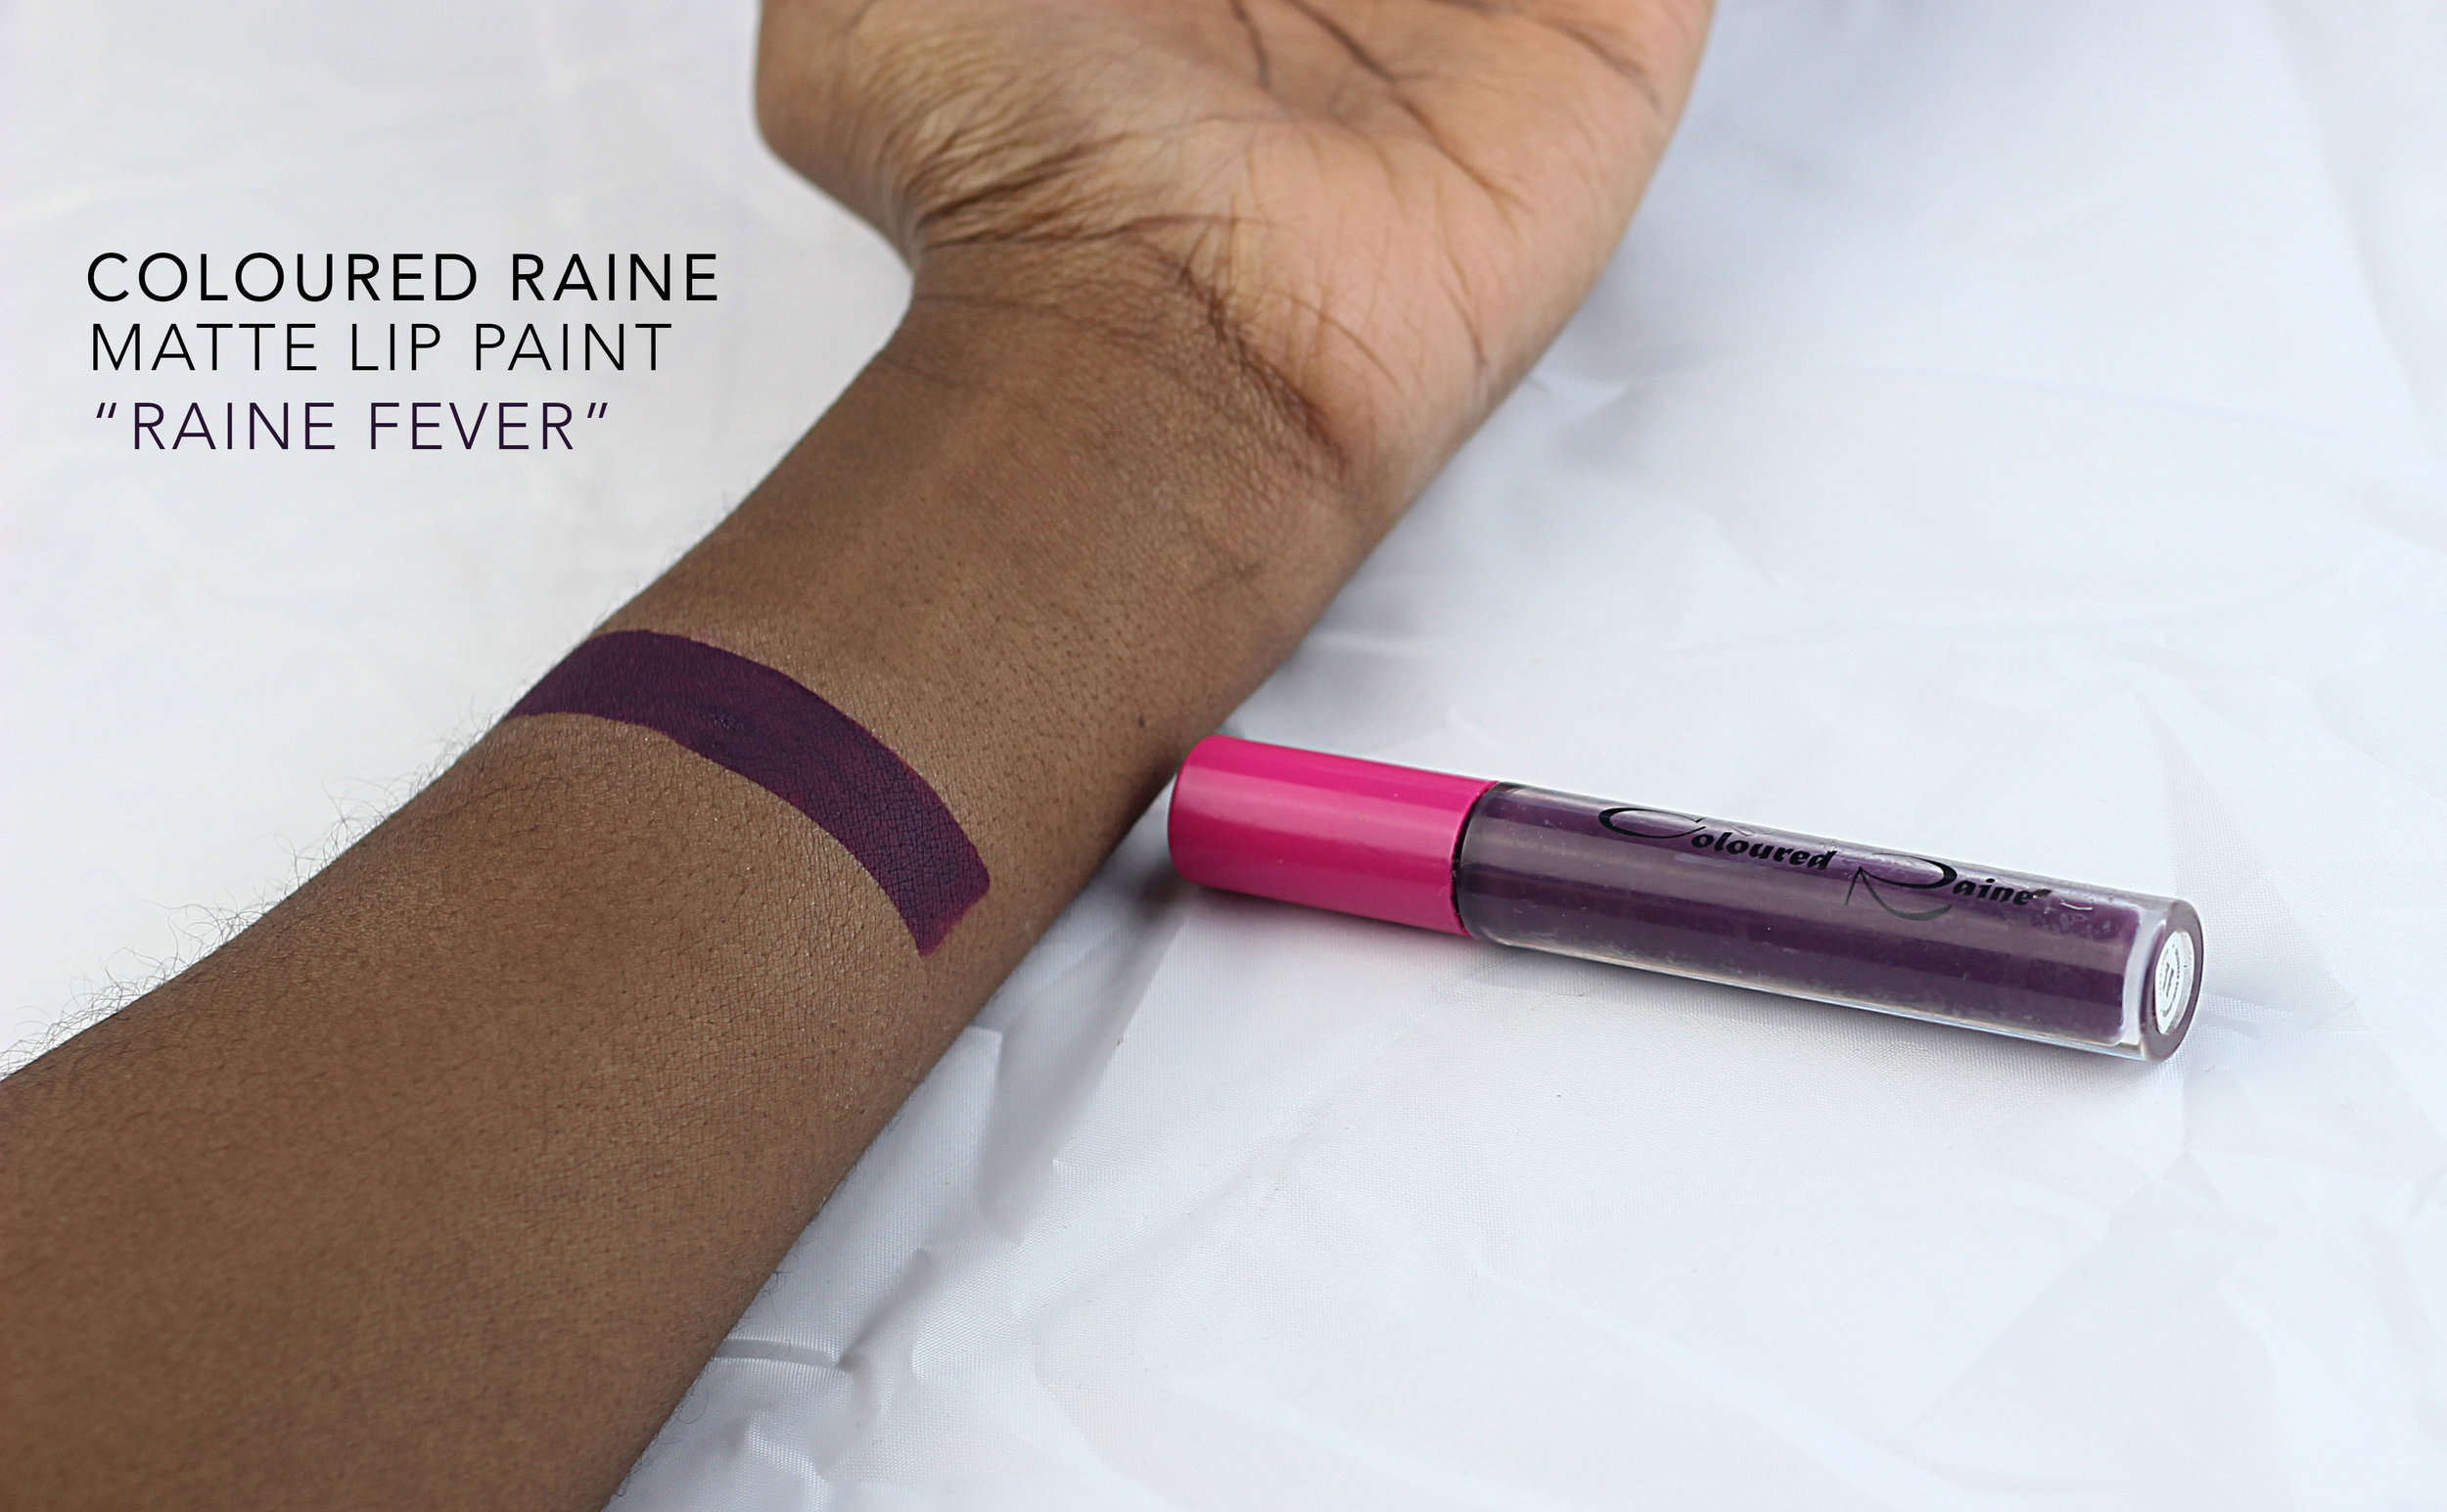 coloured raine raine fever